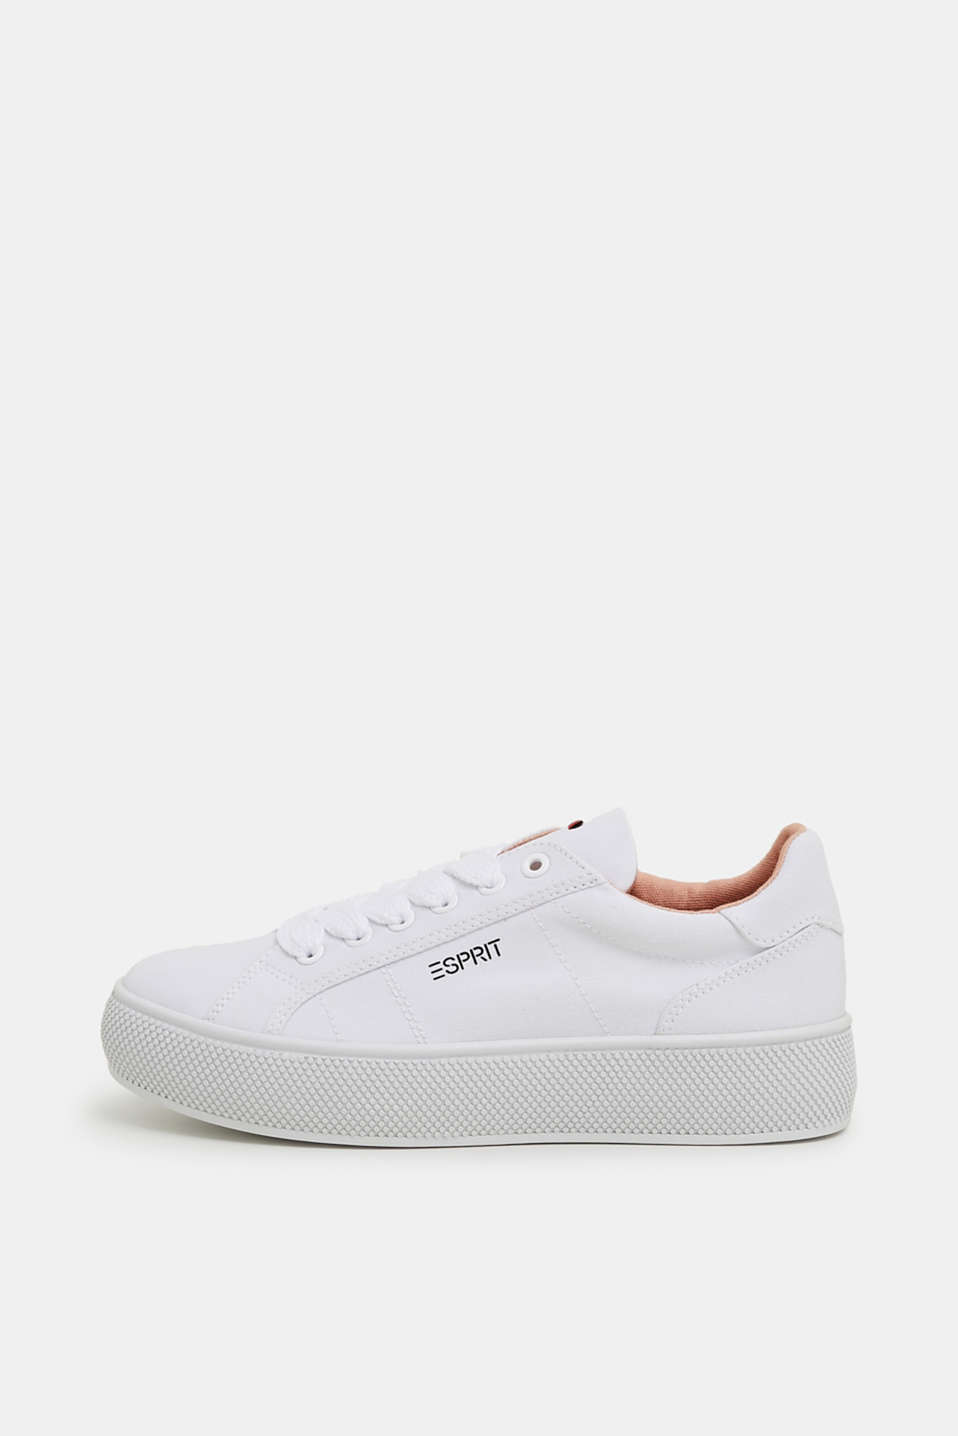 Esprit - Canvas platform trainers